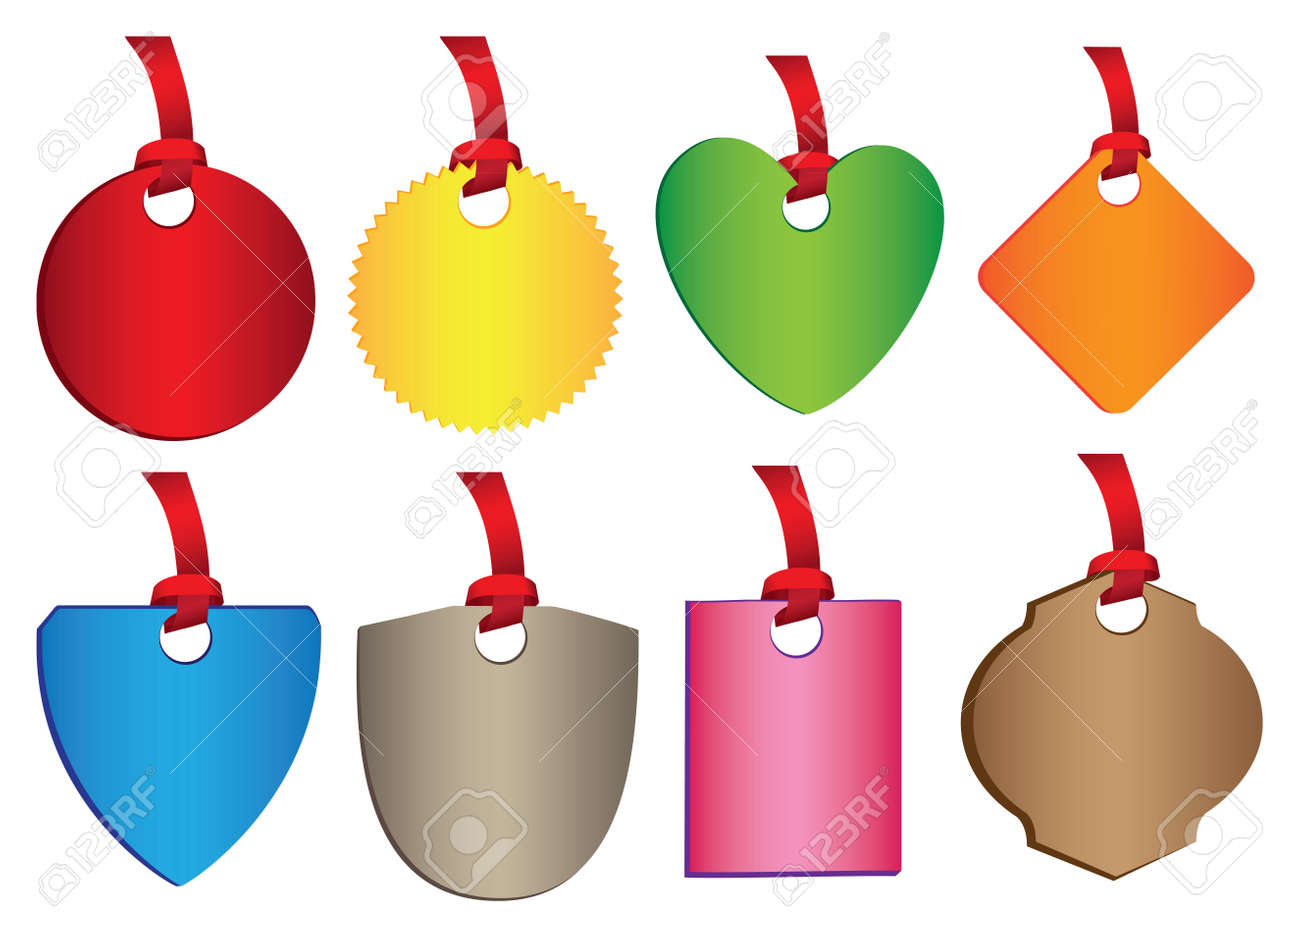 A set of colorful badges with different shapes  illustration Stock Vector - 16365451